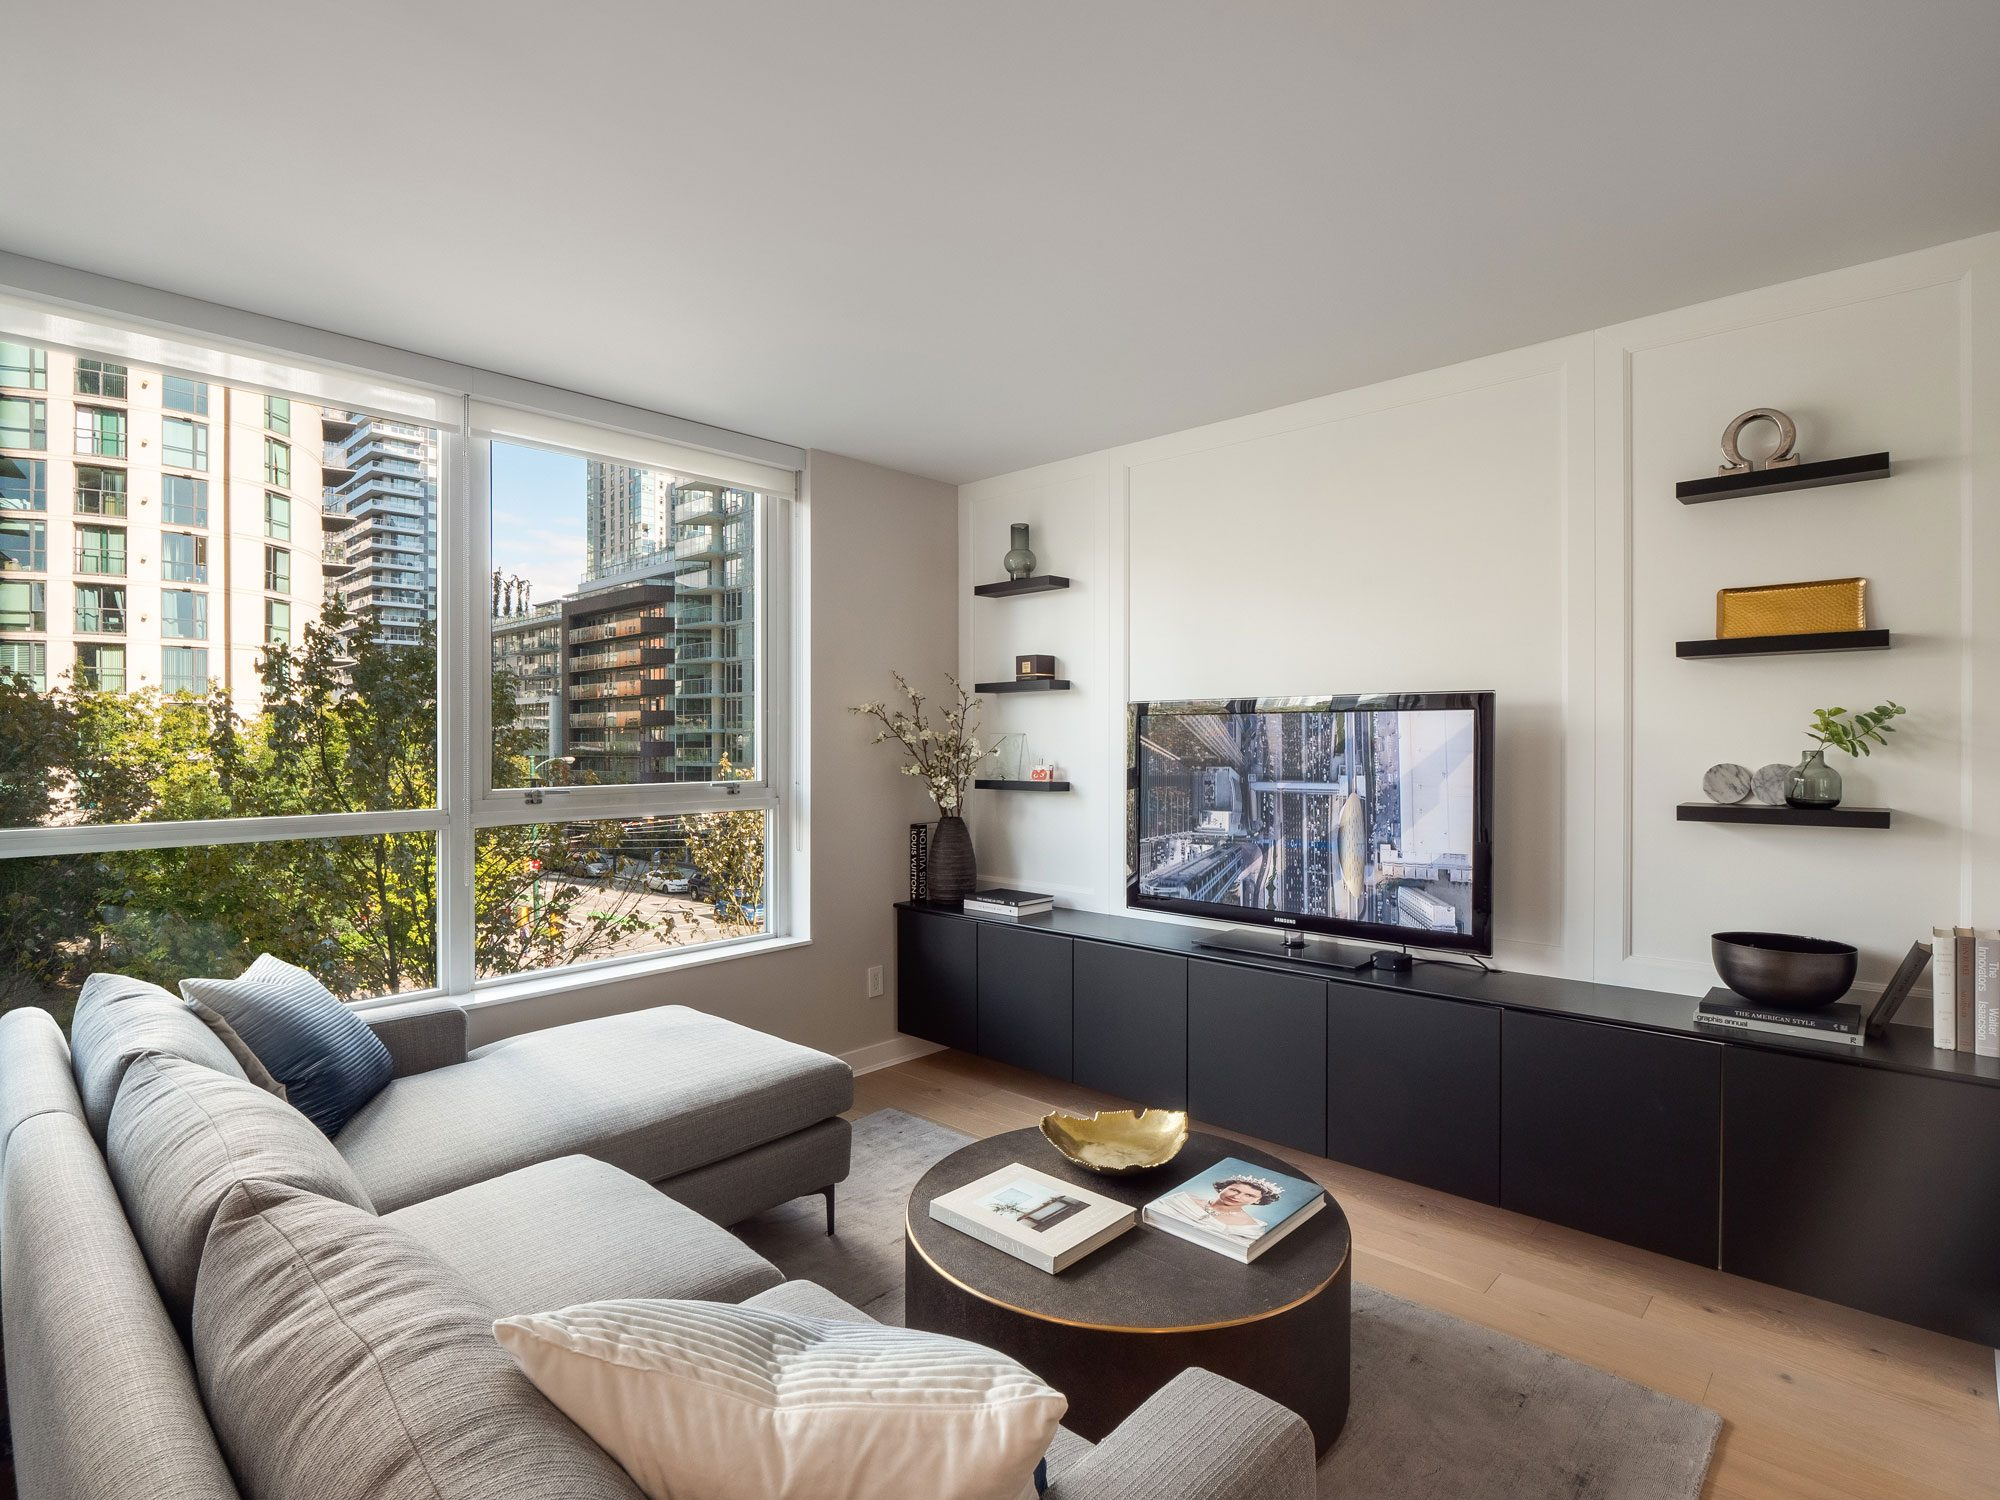 Designer home in Yaletown for sale next to George Wainborn Park